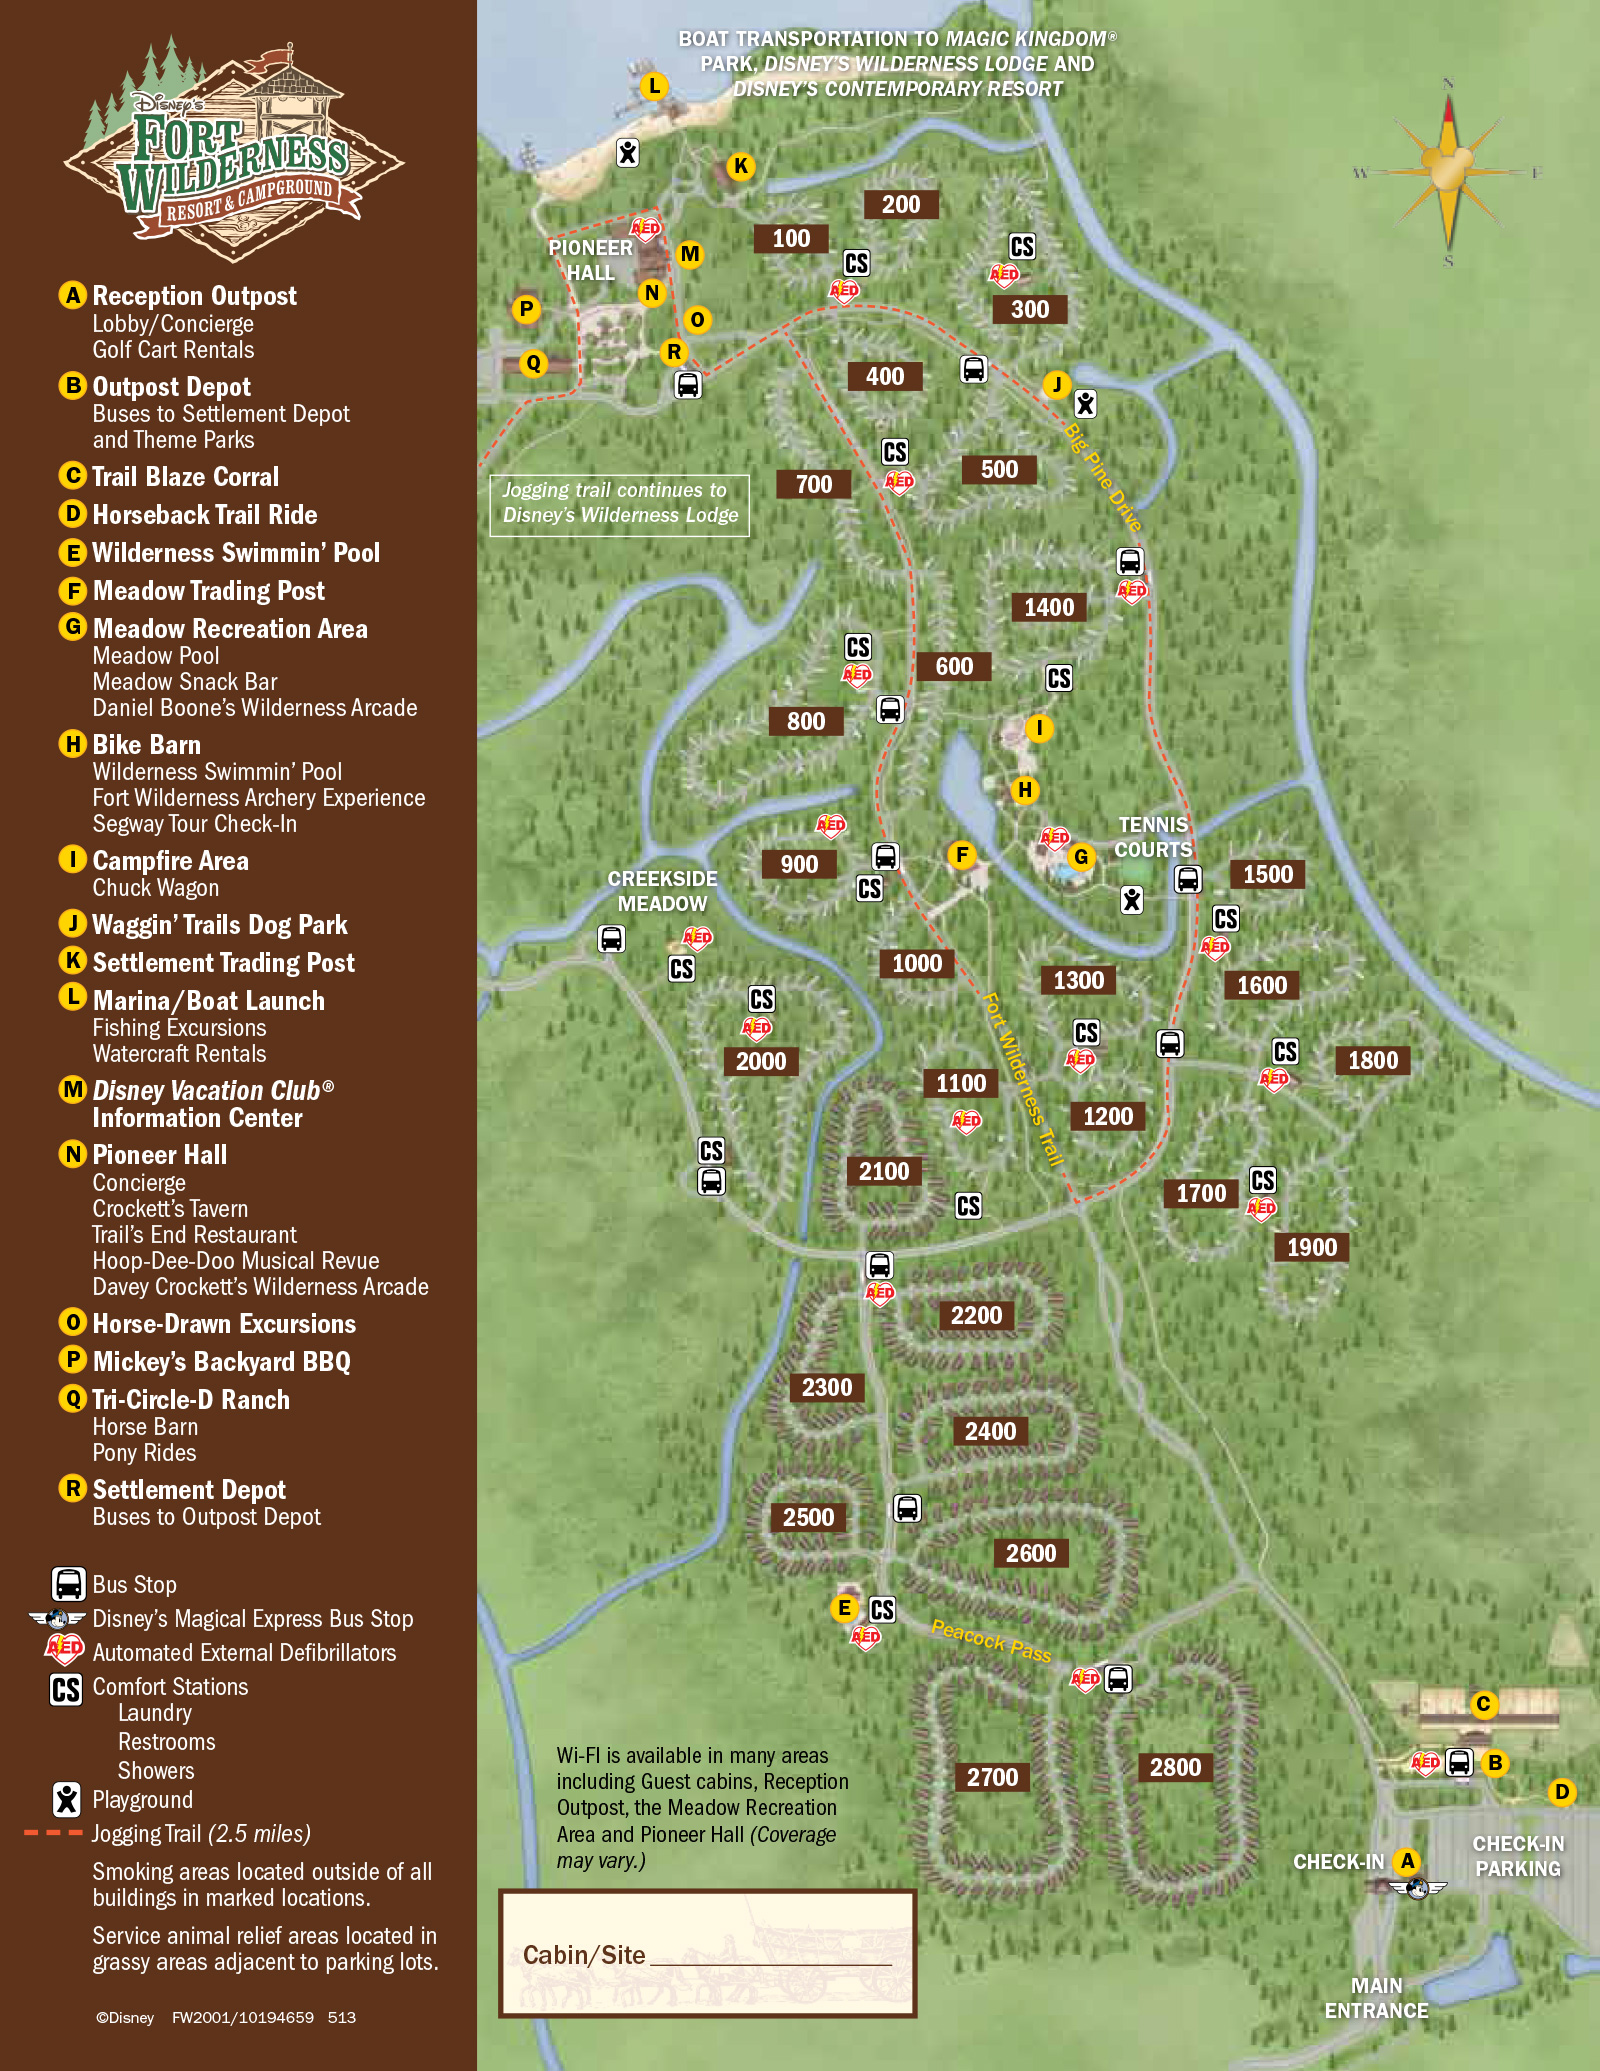 Disney Fort Wilderness Map The Campsites at Disney's Fort Wilderness Resort Disney Fort Wilderness Map